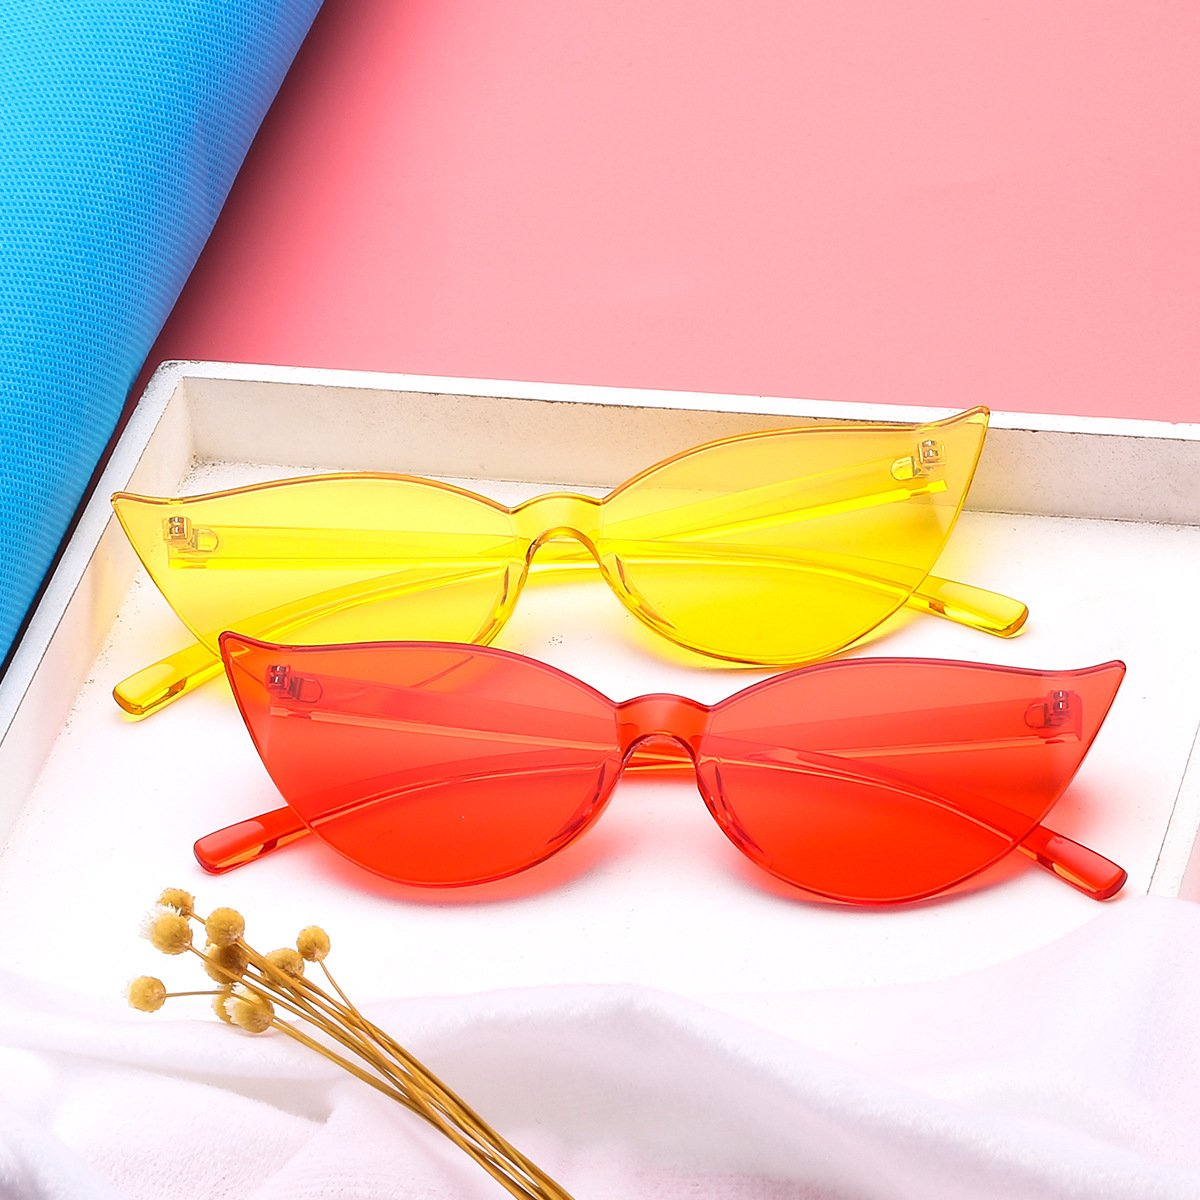 2018 export cross-border new cat-eye conjoined colorful sunglasses Europe and America avant-garde manufacturers selling candy-colored sunglasses